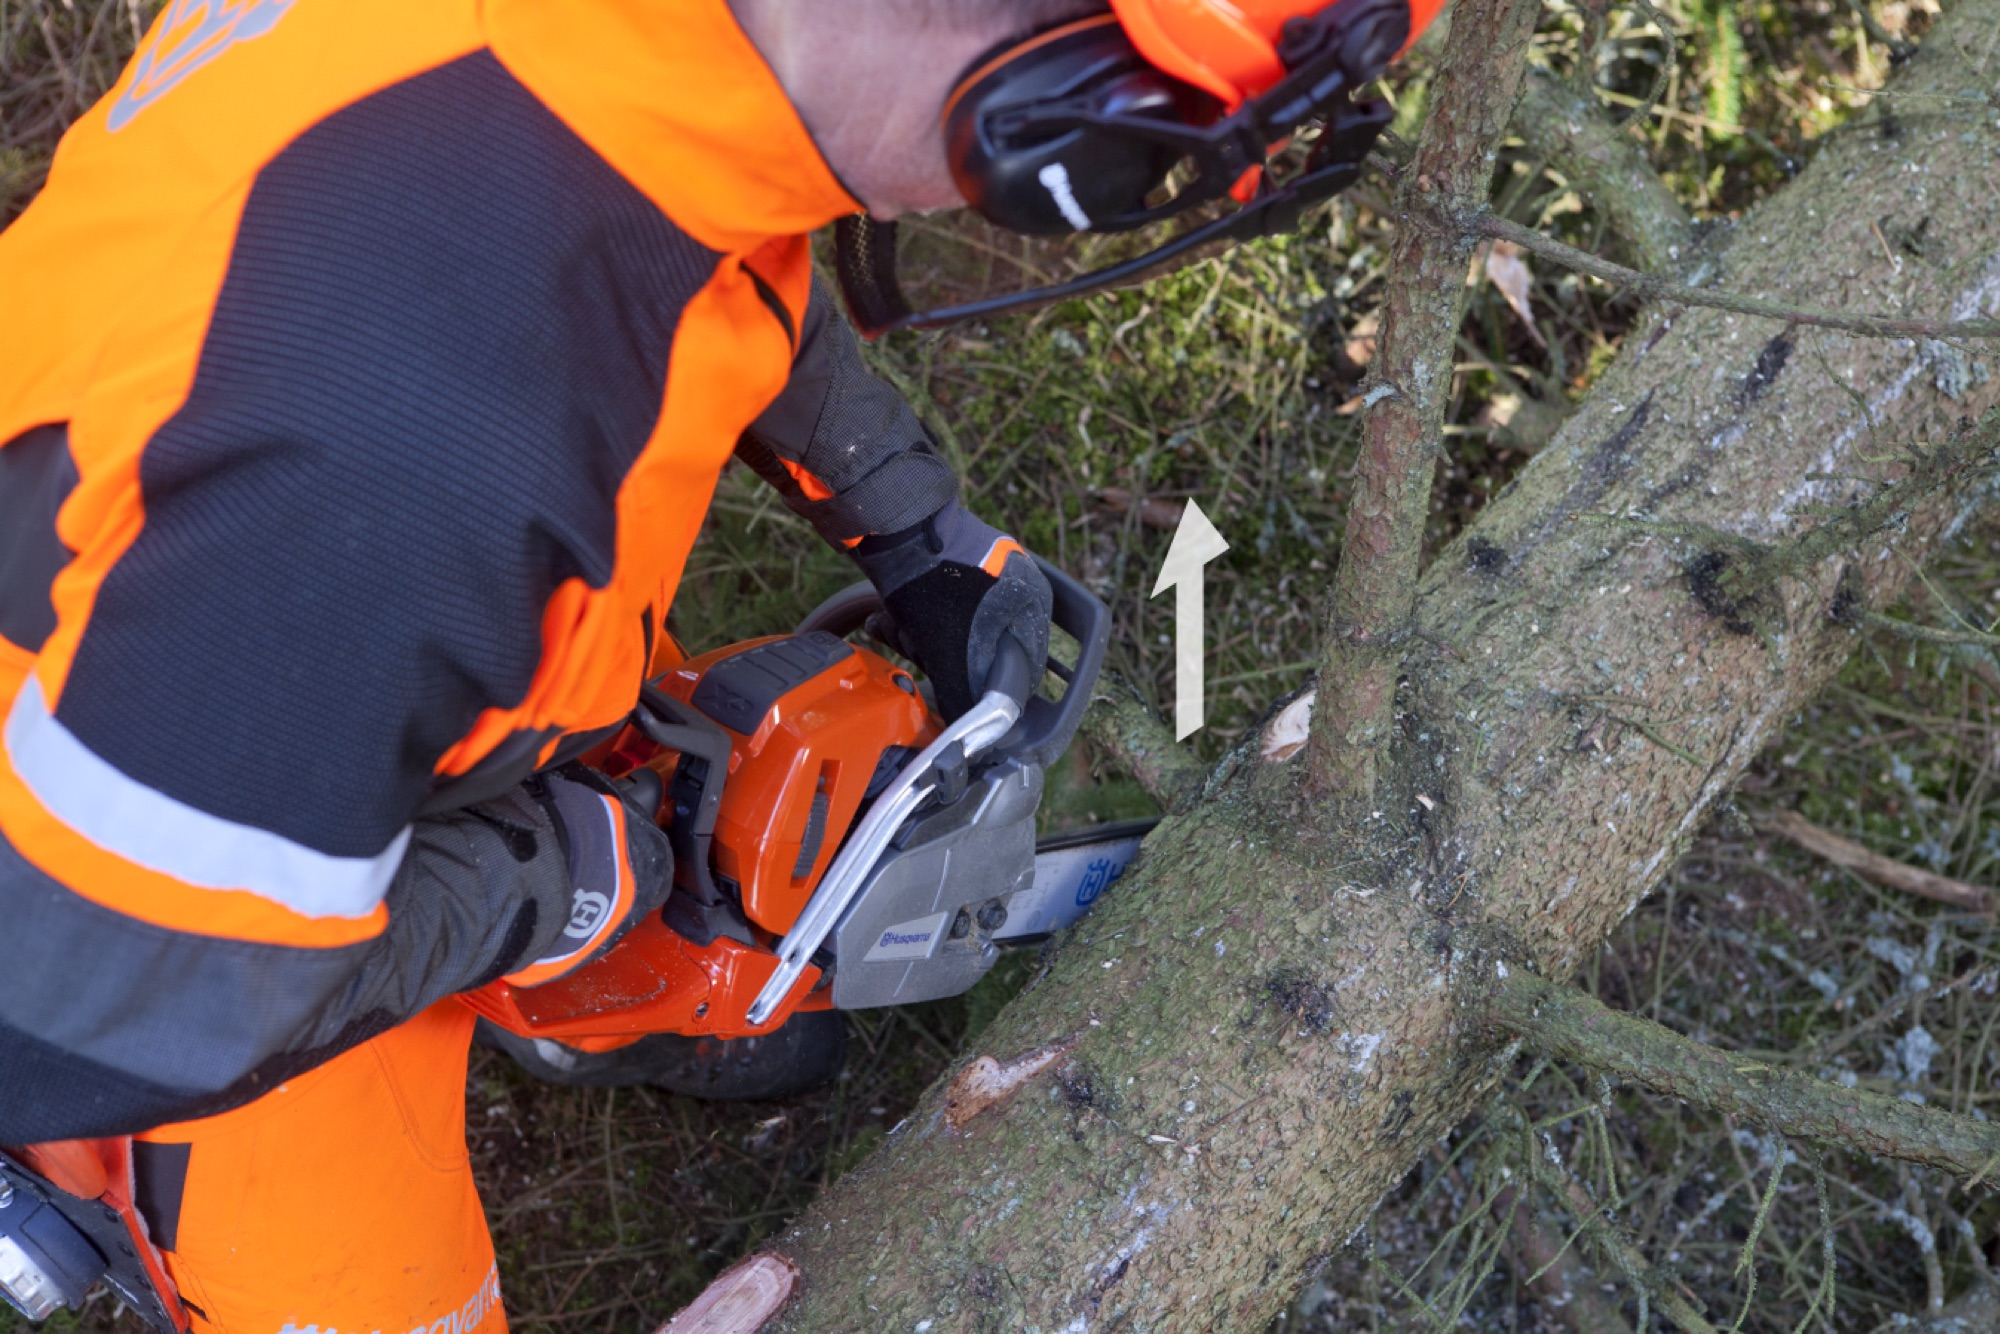 Forestry worker continues at the left side of the tree, limbing a branch from below